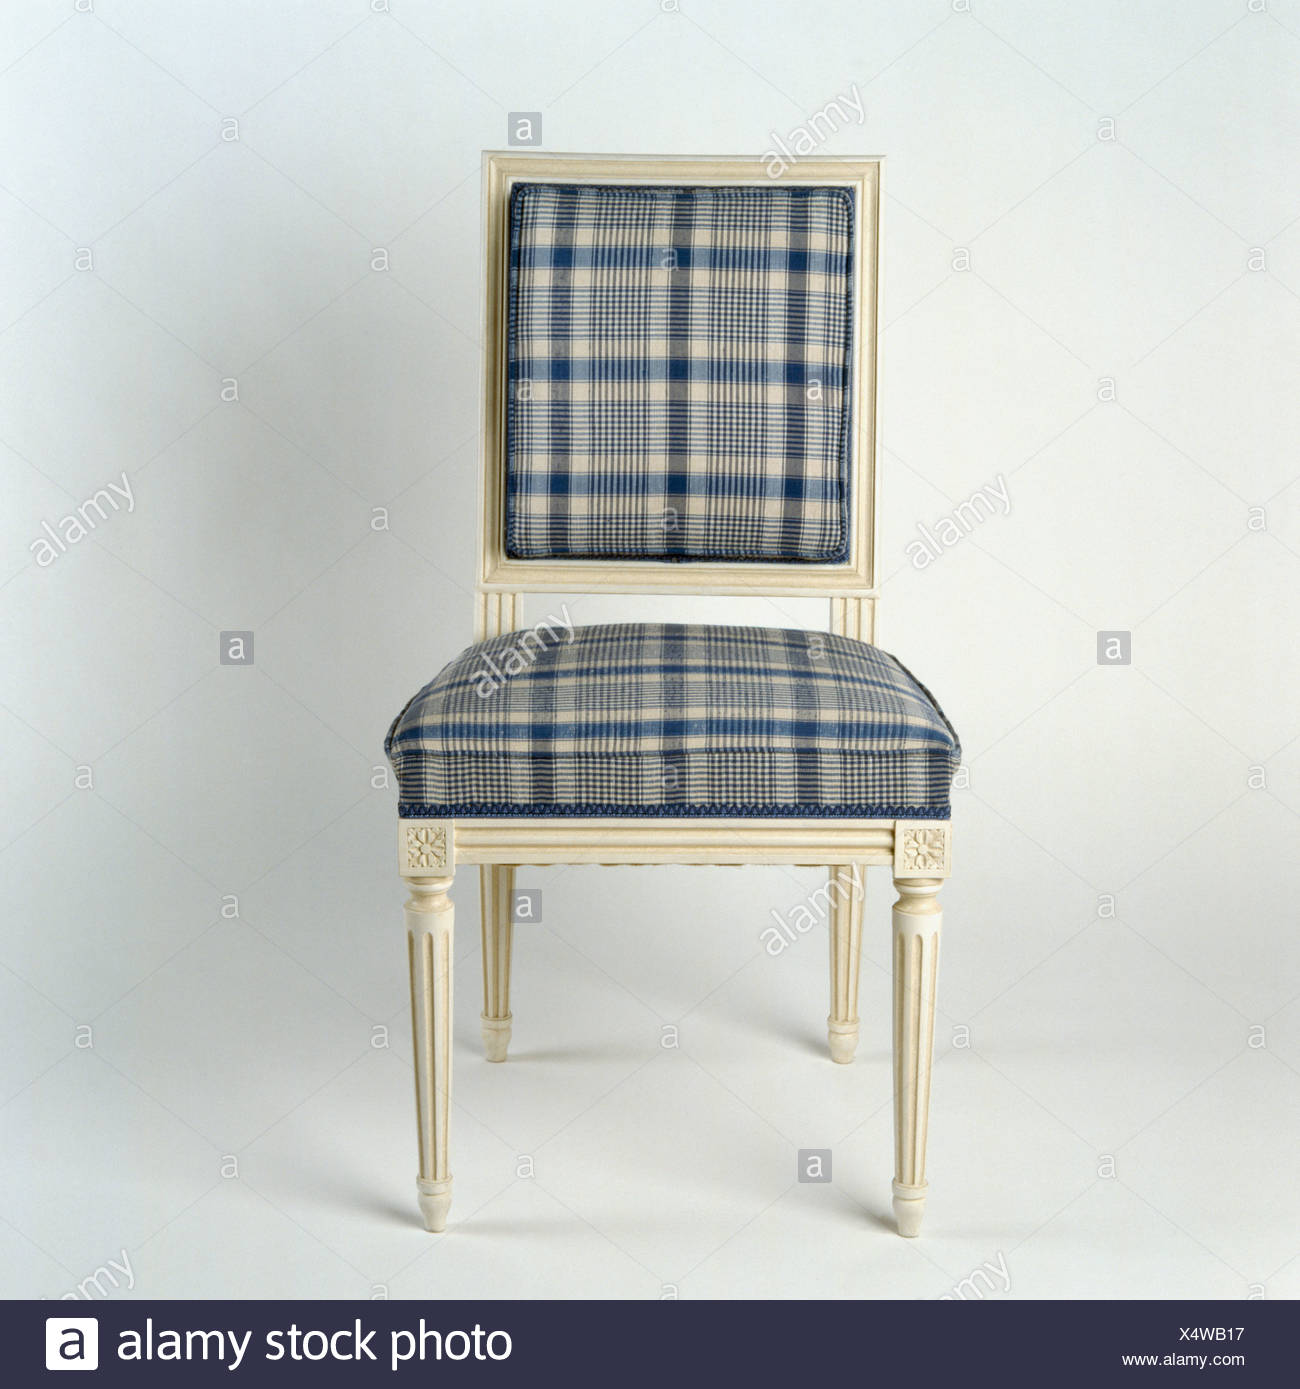 Close Up Of Cream Painted Dining Chair Upholstered In Blue+gray Plaid Fabric